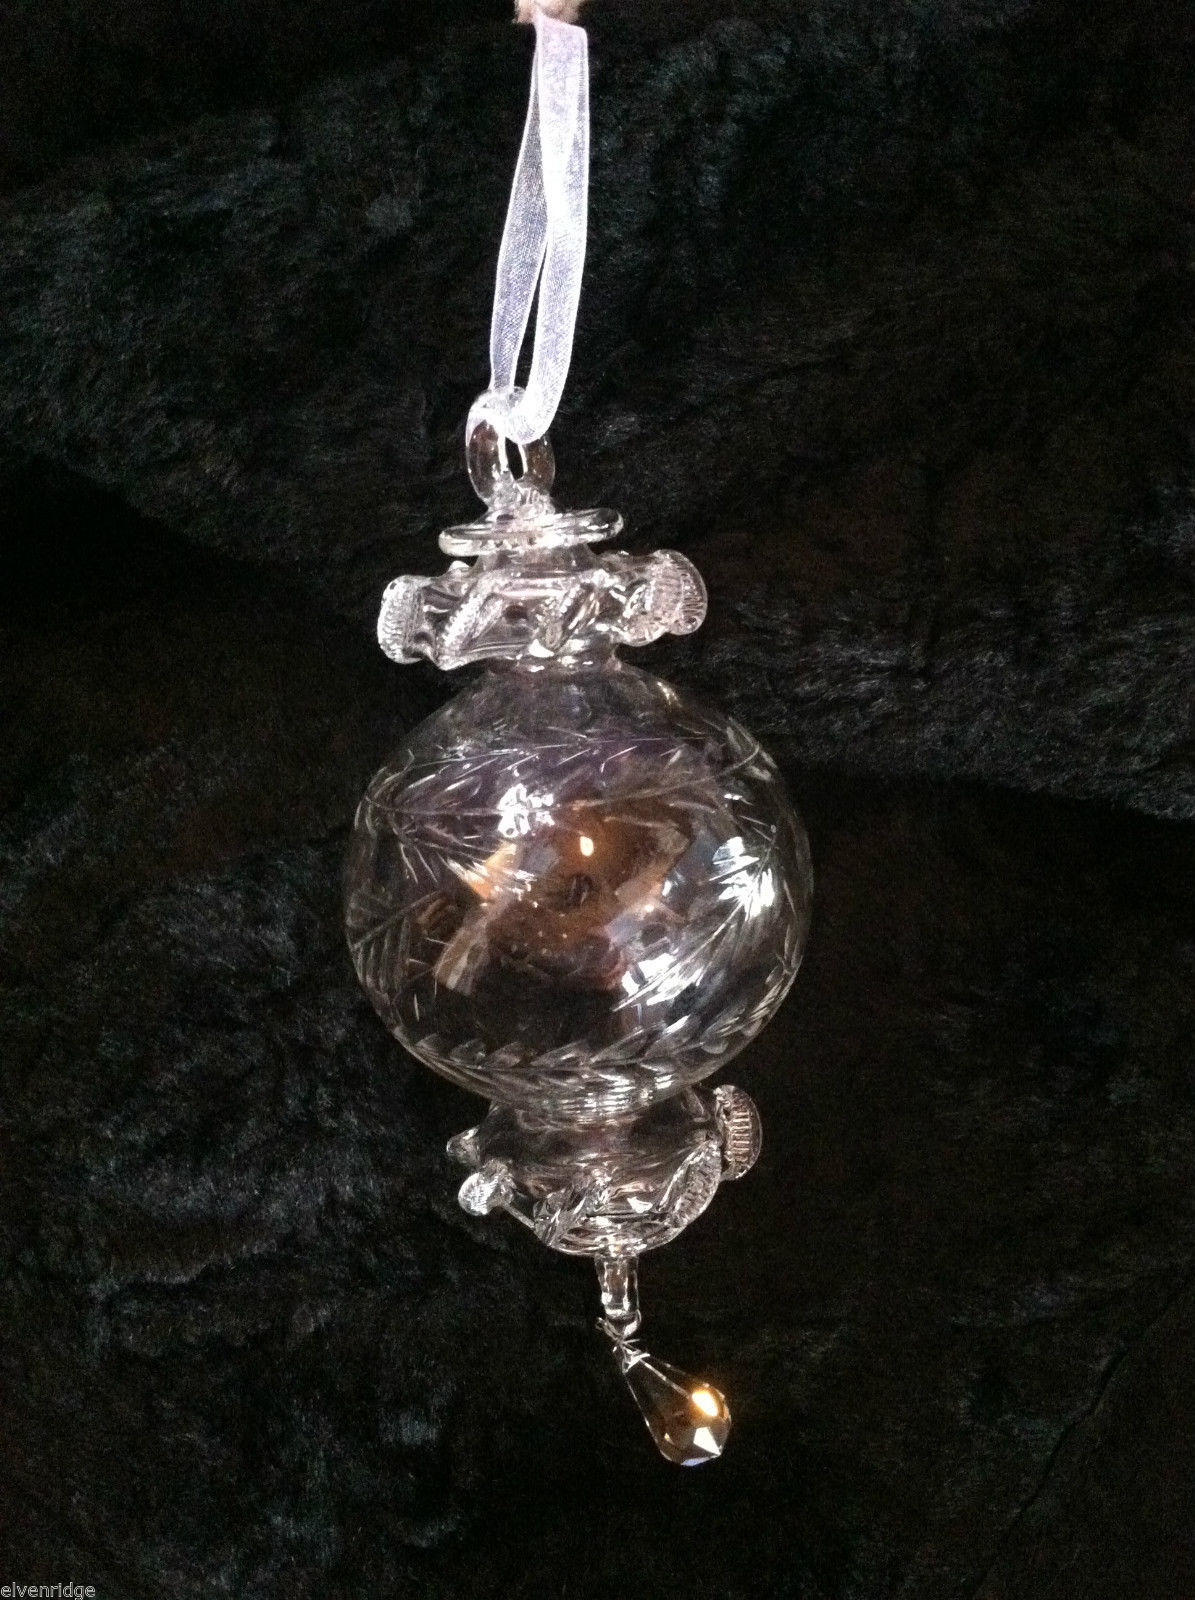 Etched Flower Glass Ornament w/ teardrop crystal hanging